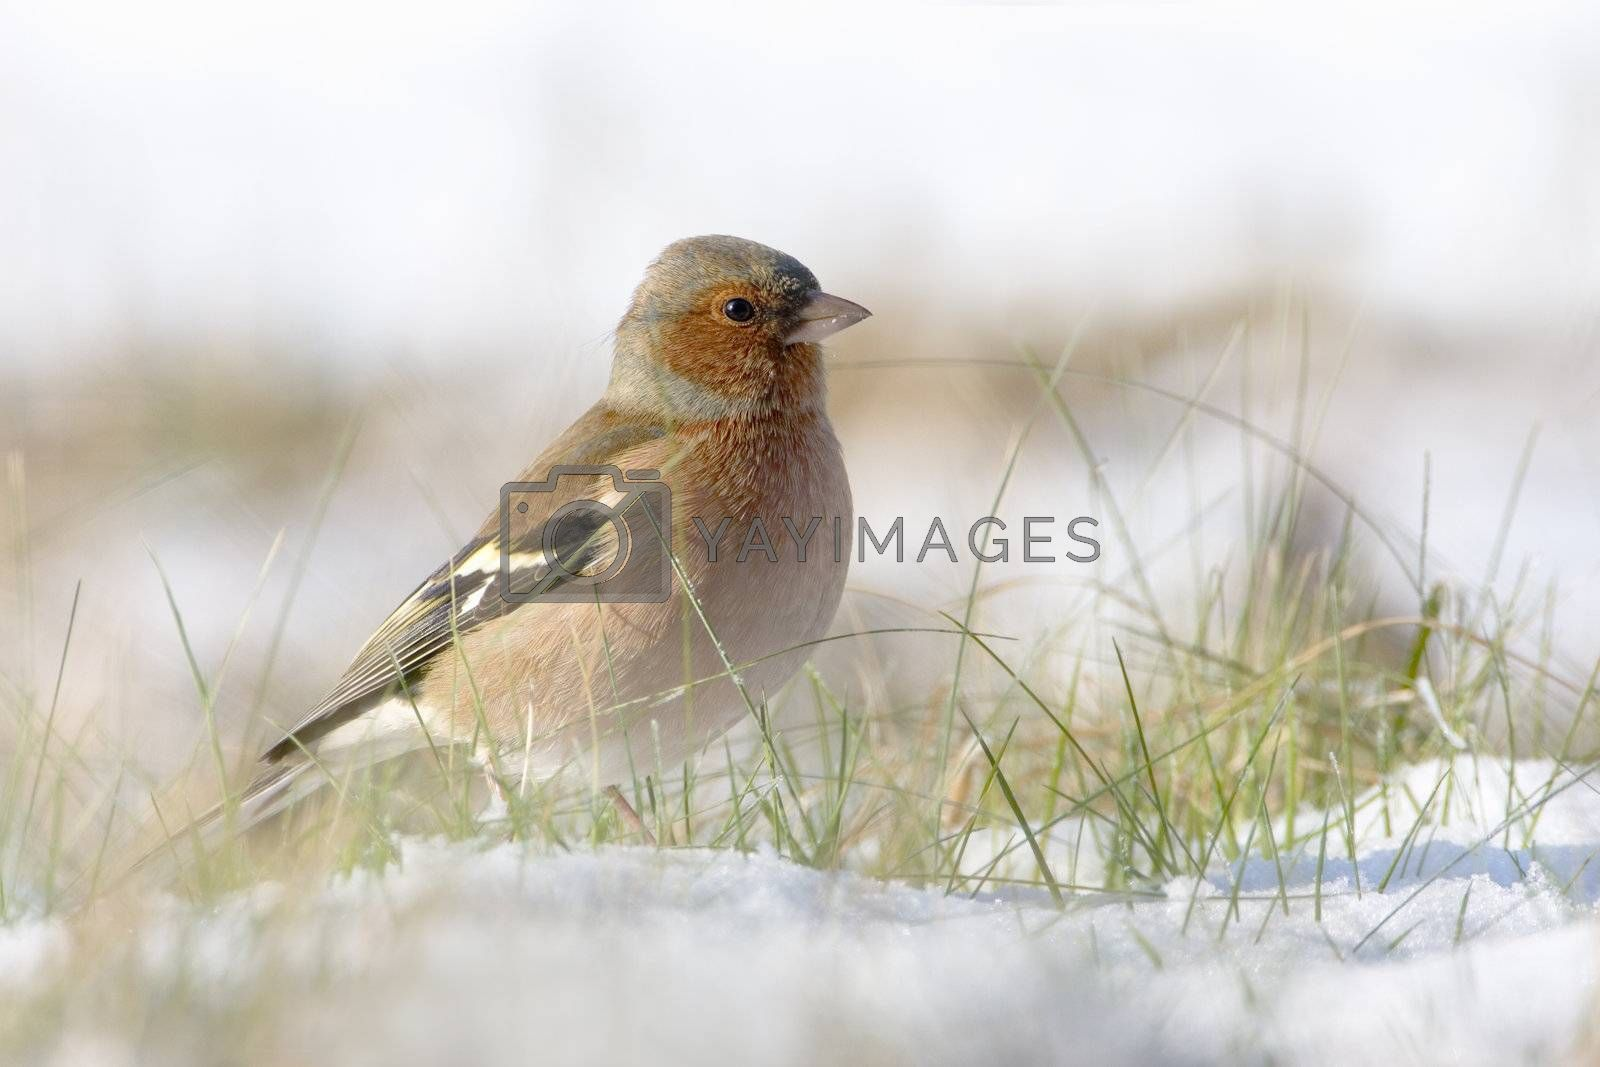 Chaffinch in the snow in a cold winter. You can see every detail of the head.